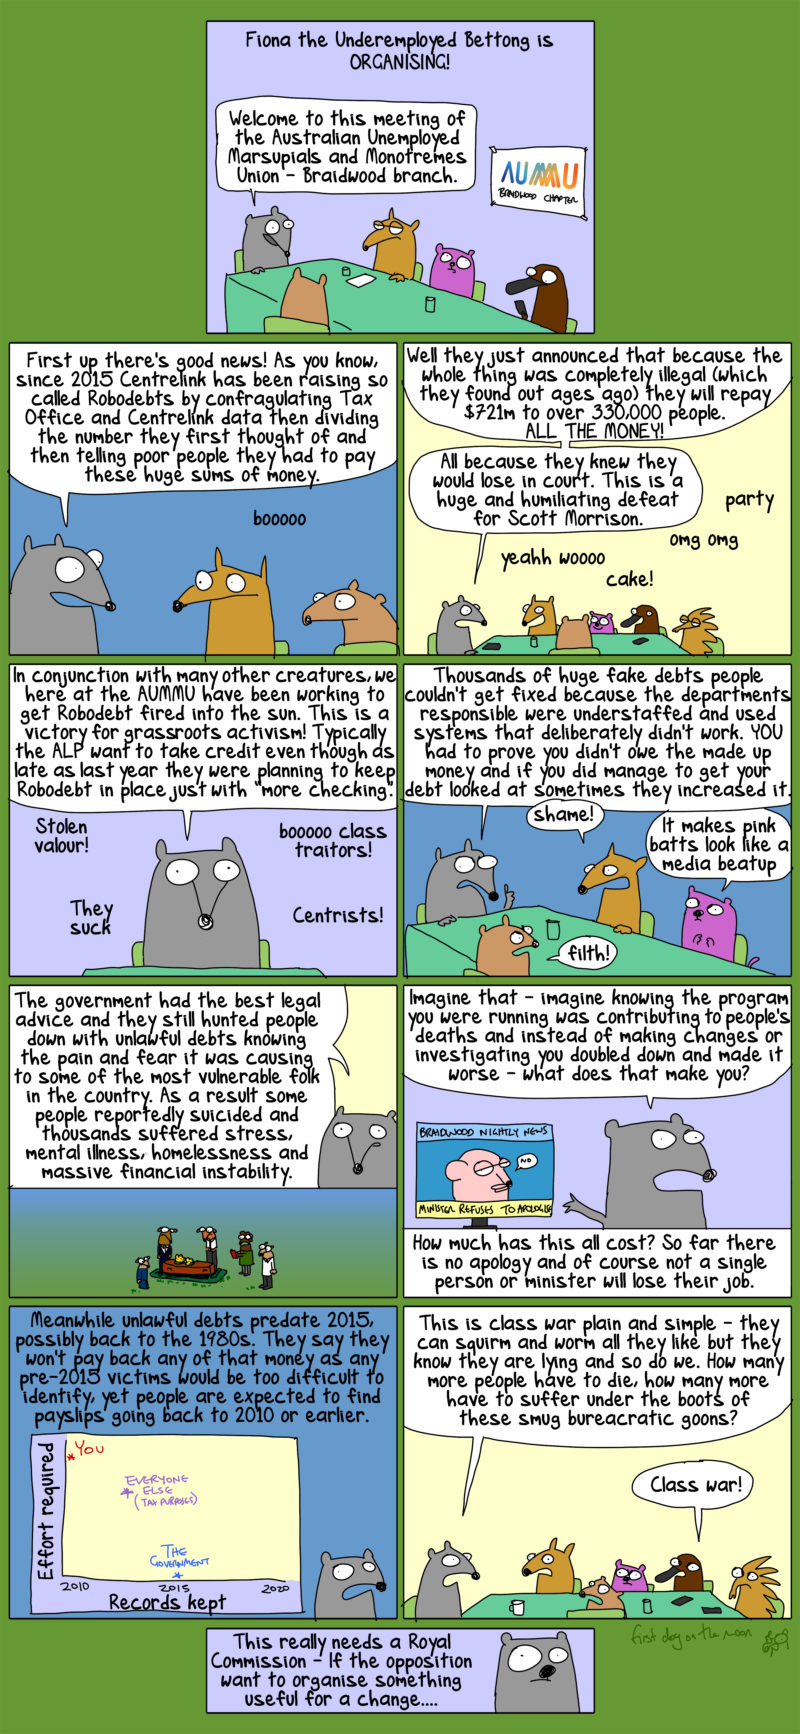 fiona the underemployed bettong and the huge fake debts